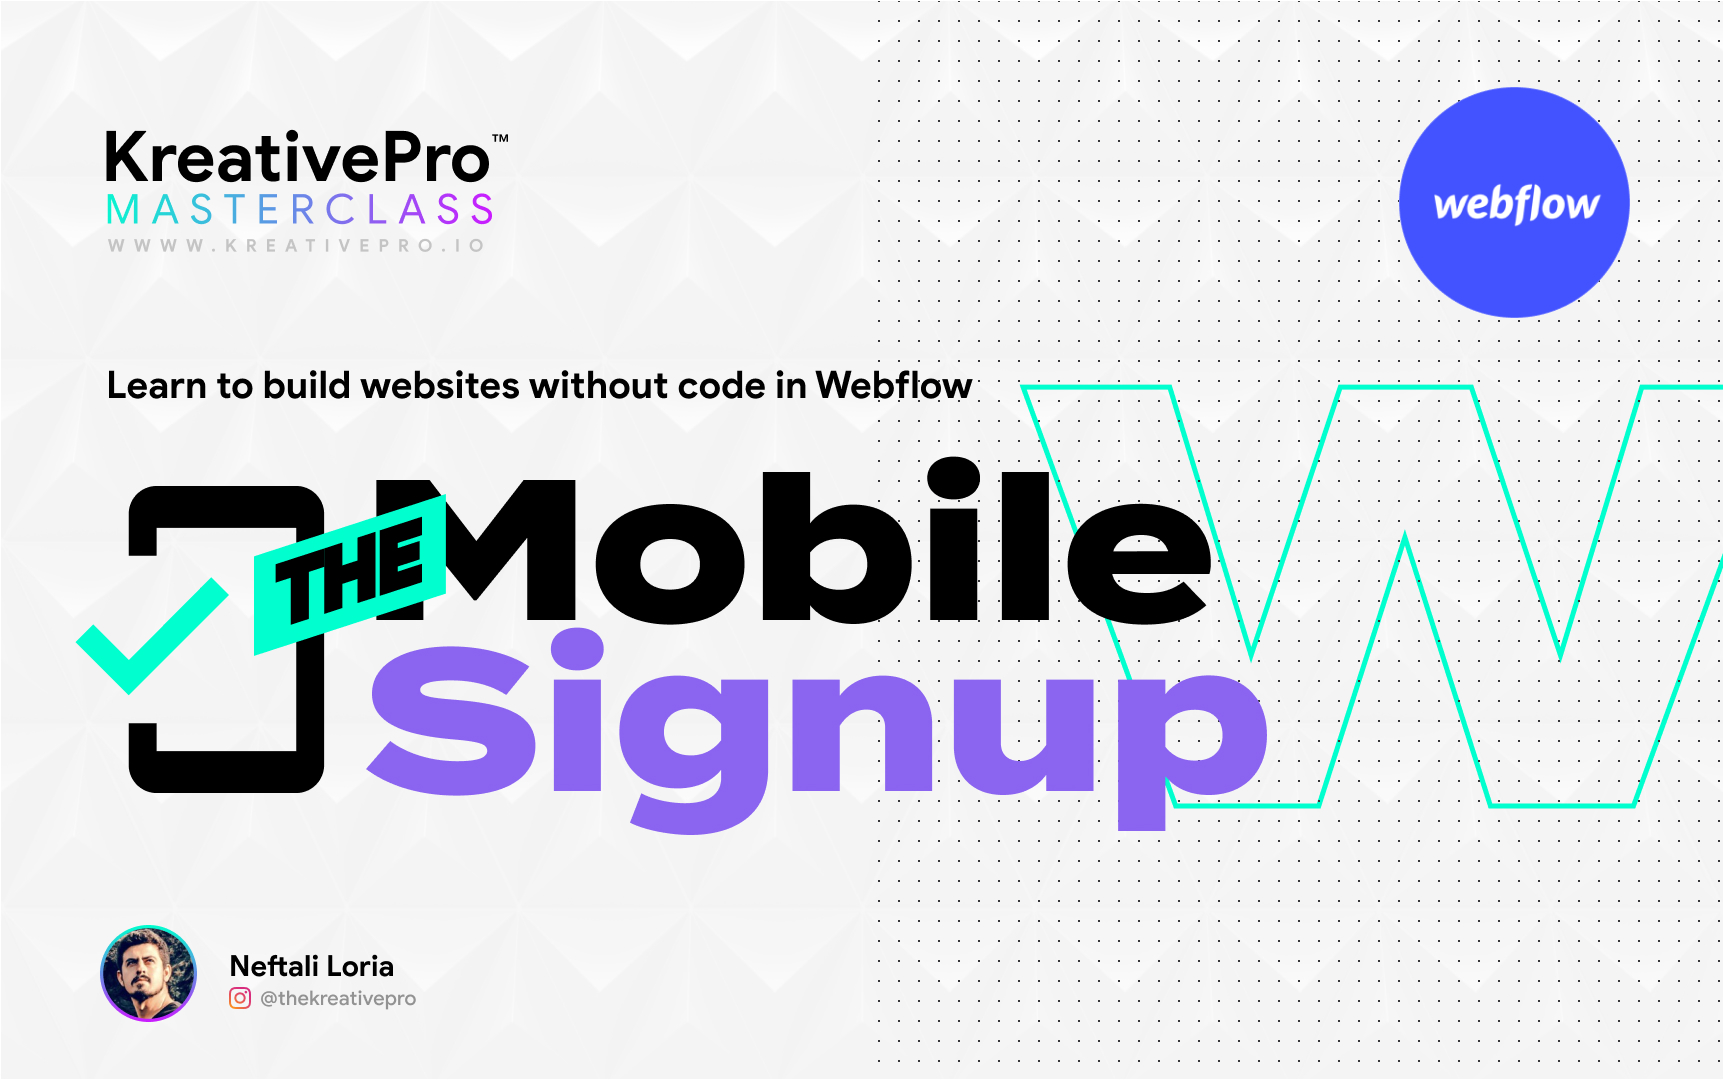 Webflow 4.8 - The Mobile Signup